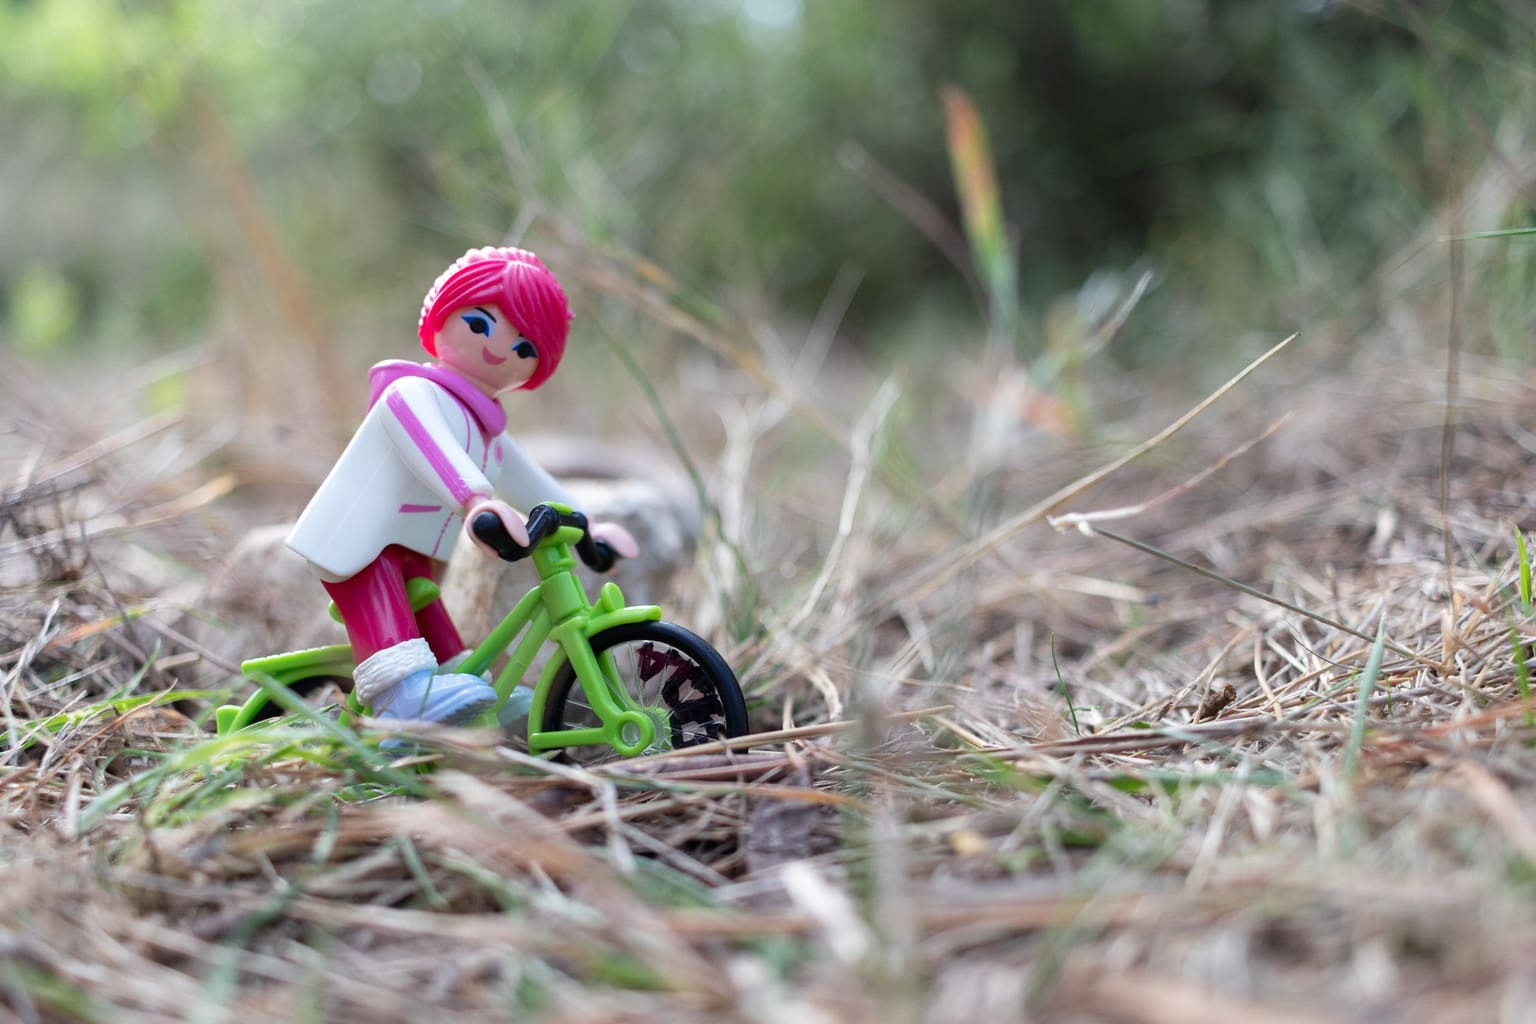 Playmobil desenfocado